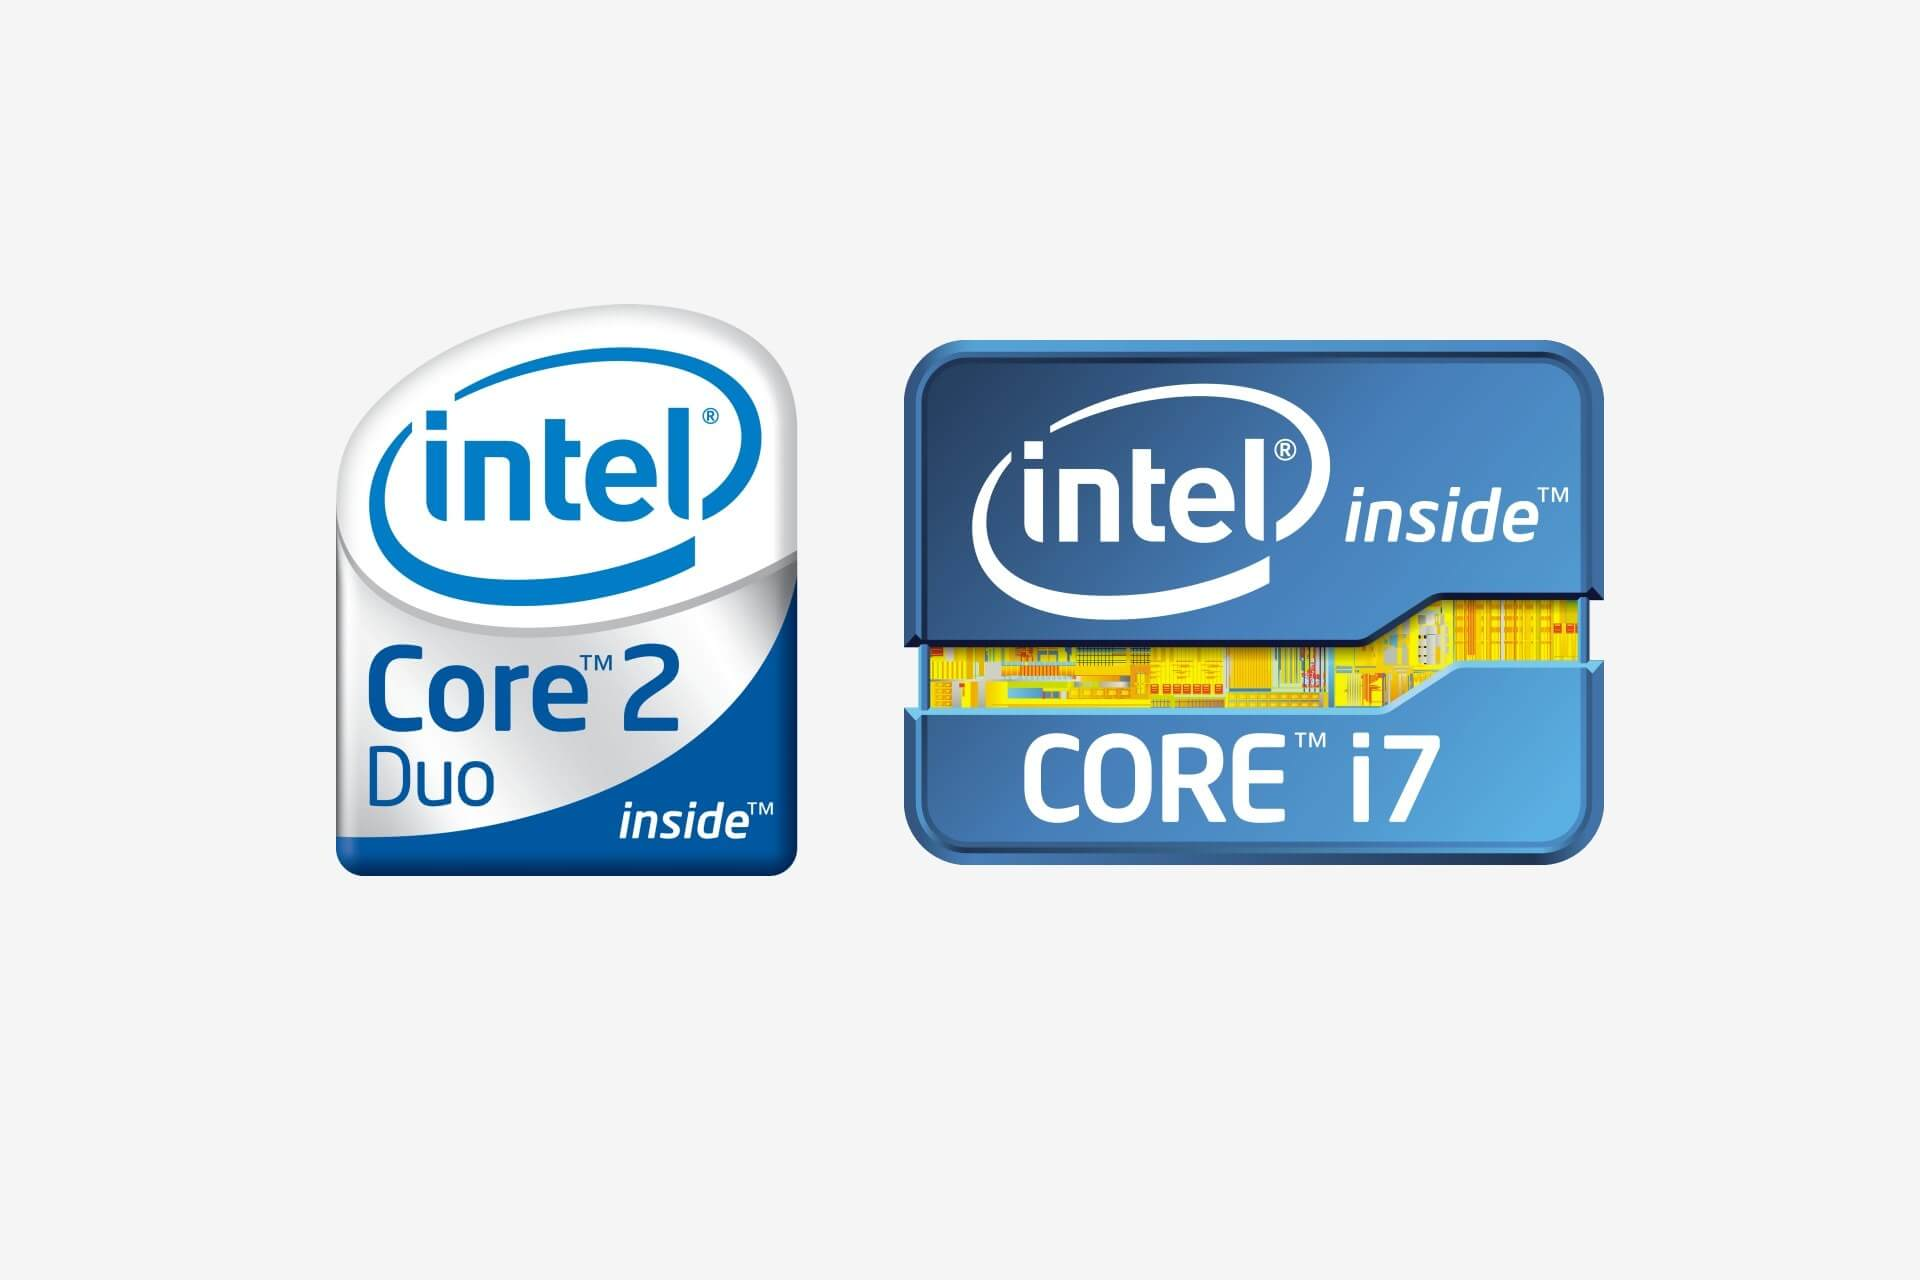 China seems to have a problem with counterfeit Intel CPUs